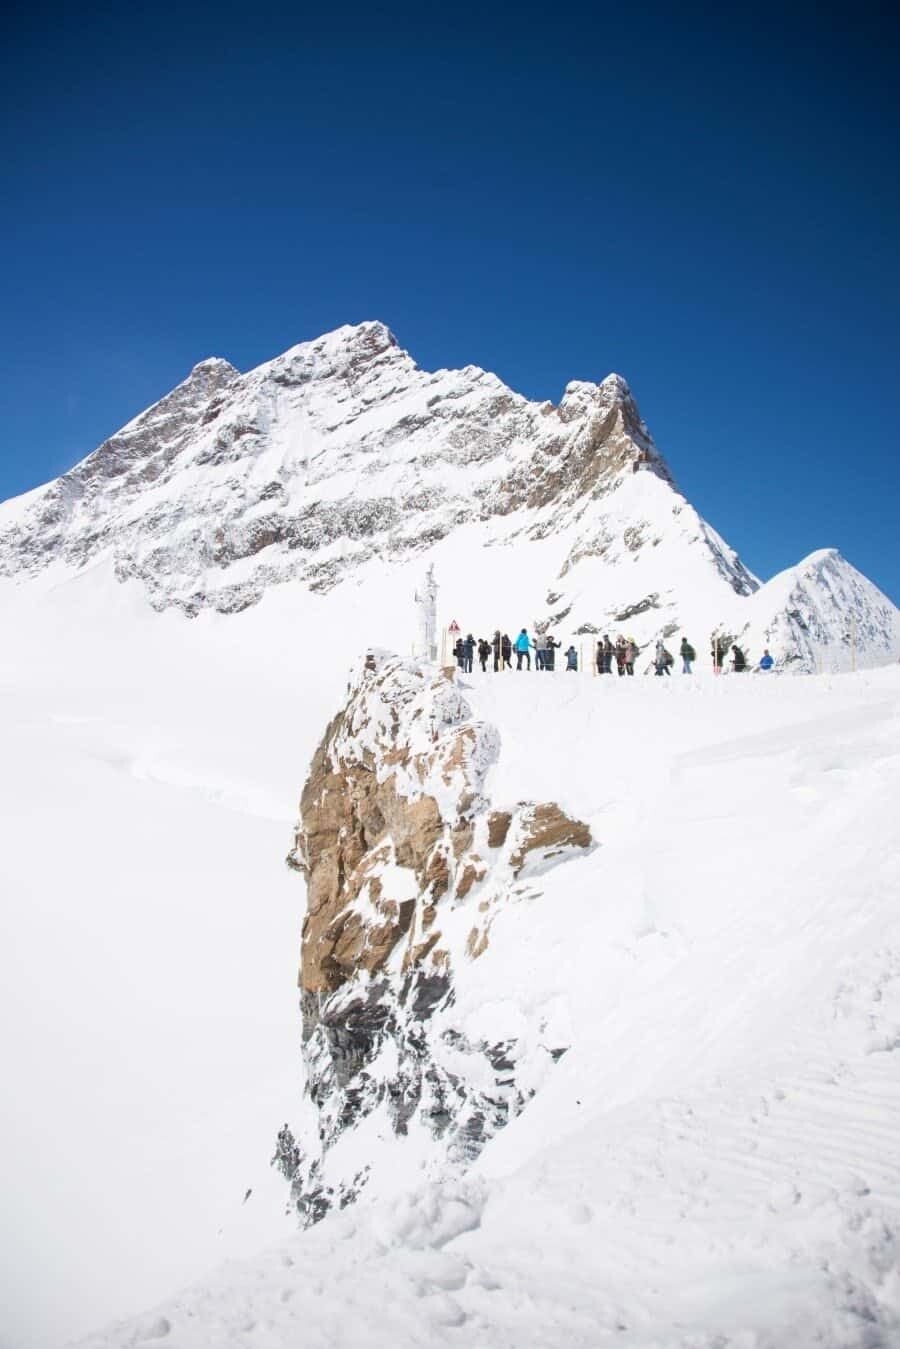 jungfrau-travel-guide-wengen-lauterbrunnen-and-grindelwald-by-the-wandering-lens-16